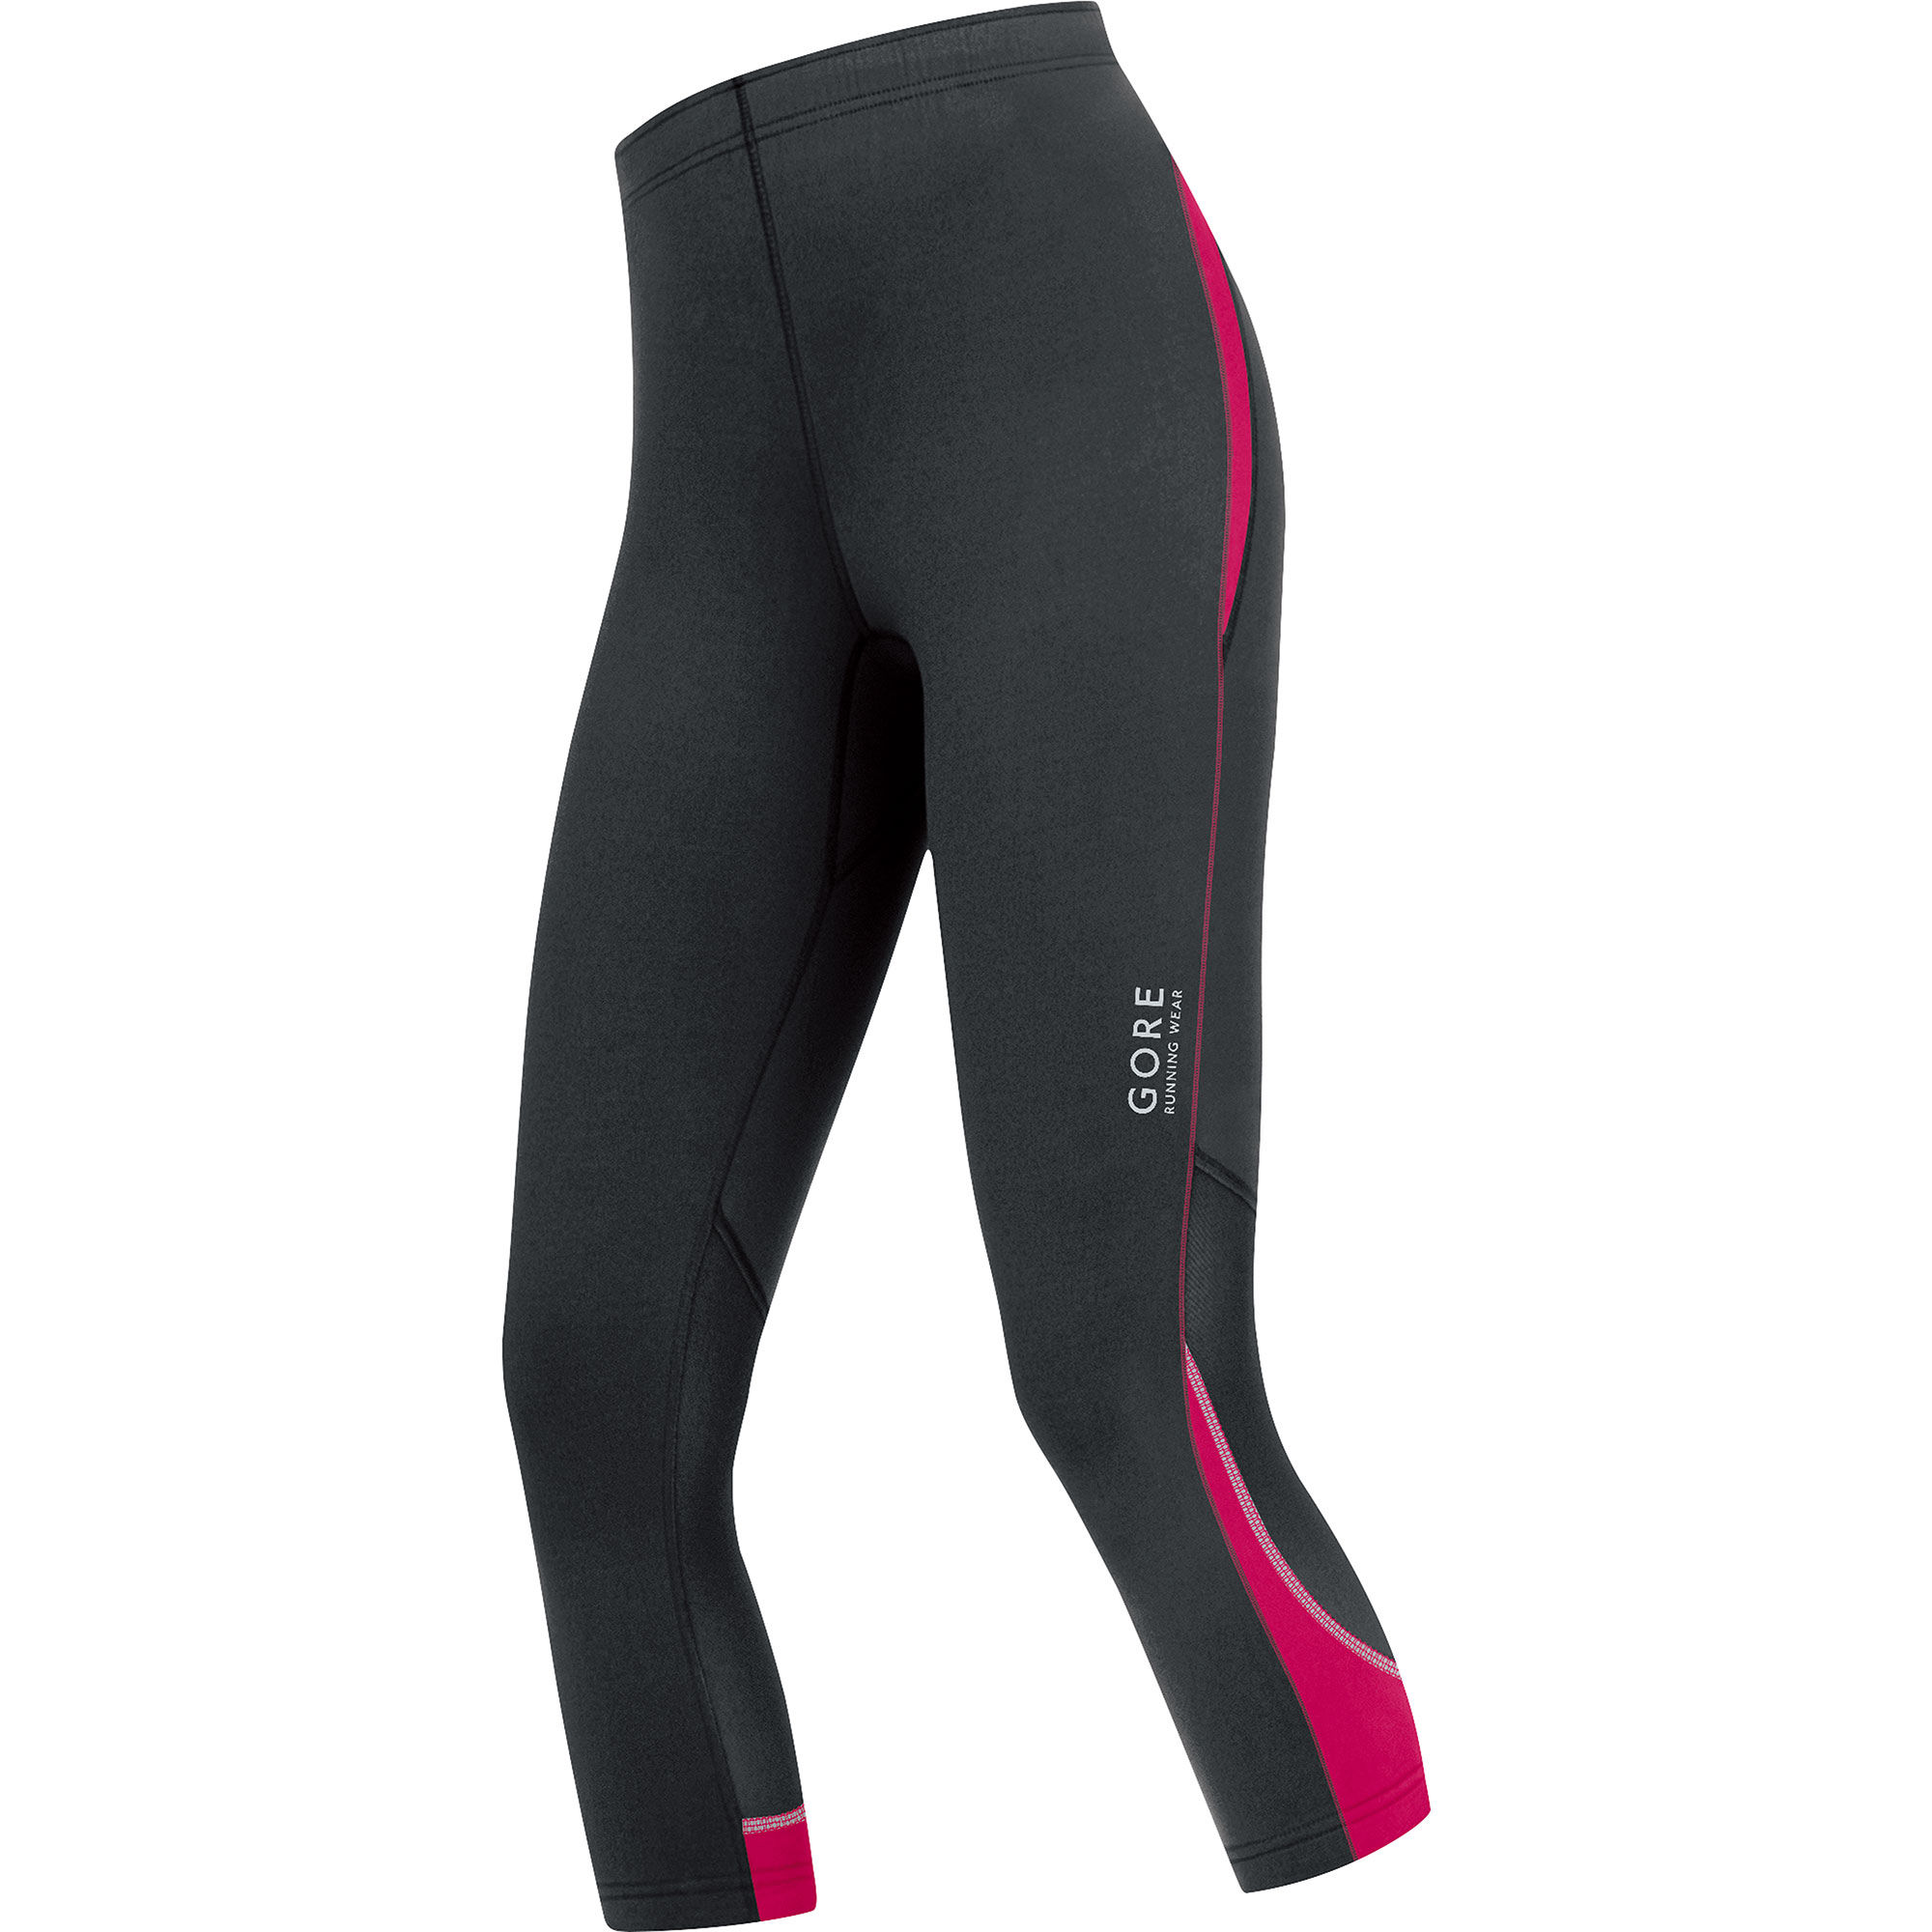 Suit up for your favorite sport in men's leggings and tights. Pair your favorite men's leggings with Nike compression shirts for sweat-wicking performance during your toughest workouts. Stay warm between activities with Tech Fleece hoodies and jackets engineered to keep you comfortable during any activity. You can also browse tights and leggings for women and kids.